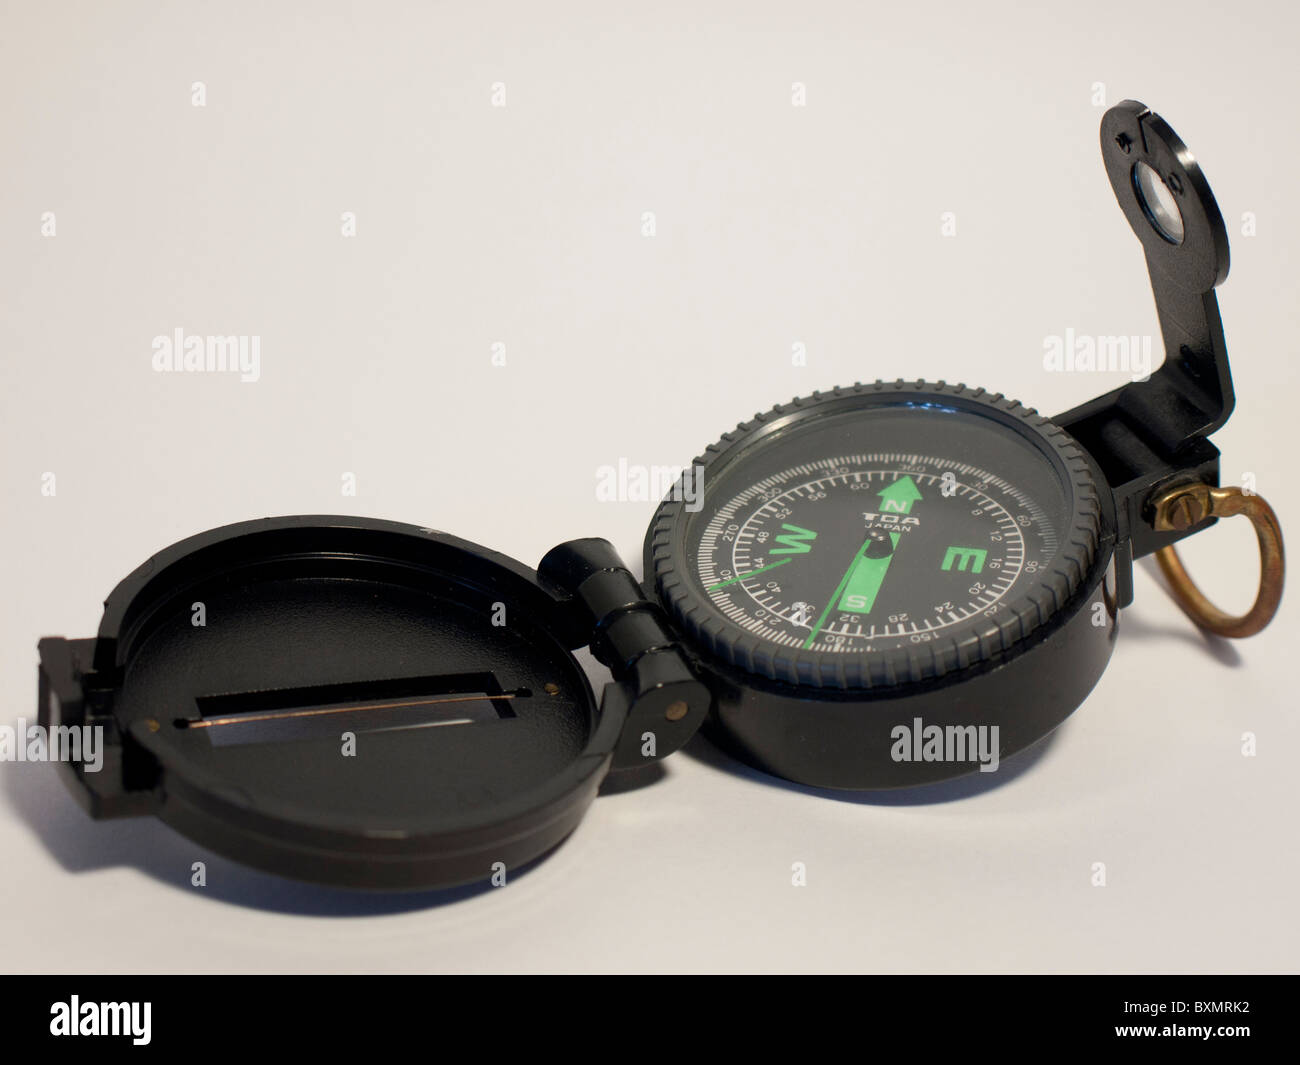 TOA lensatic fluid compass with lid cover Stock Photo